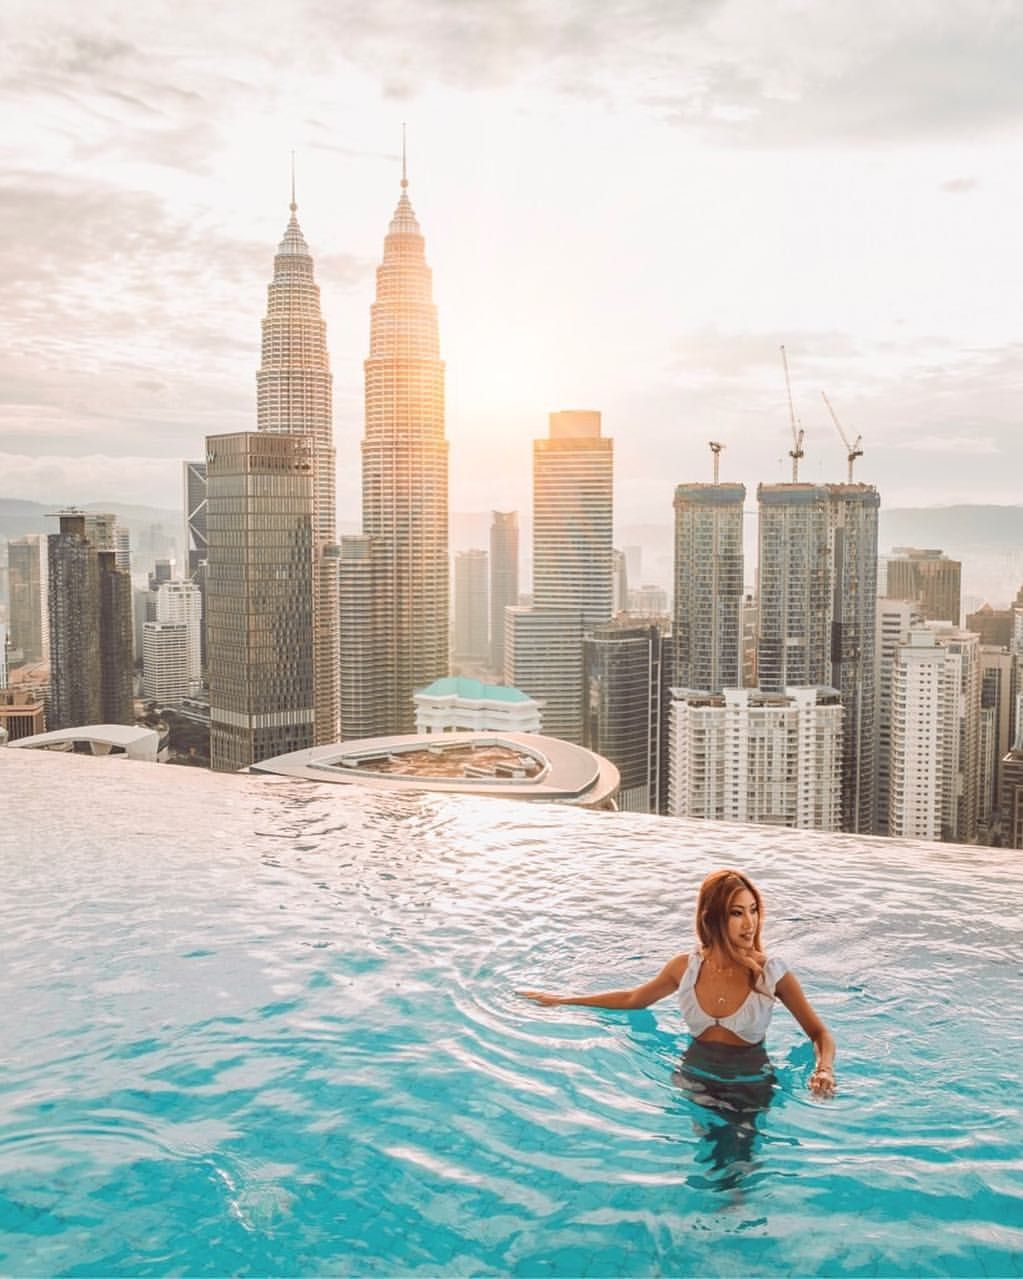 The Face Suites Kuala Lumpur Taxi Tour Kl Call Us For